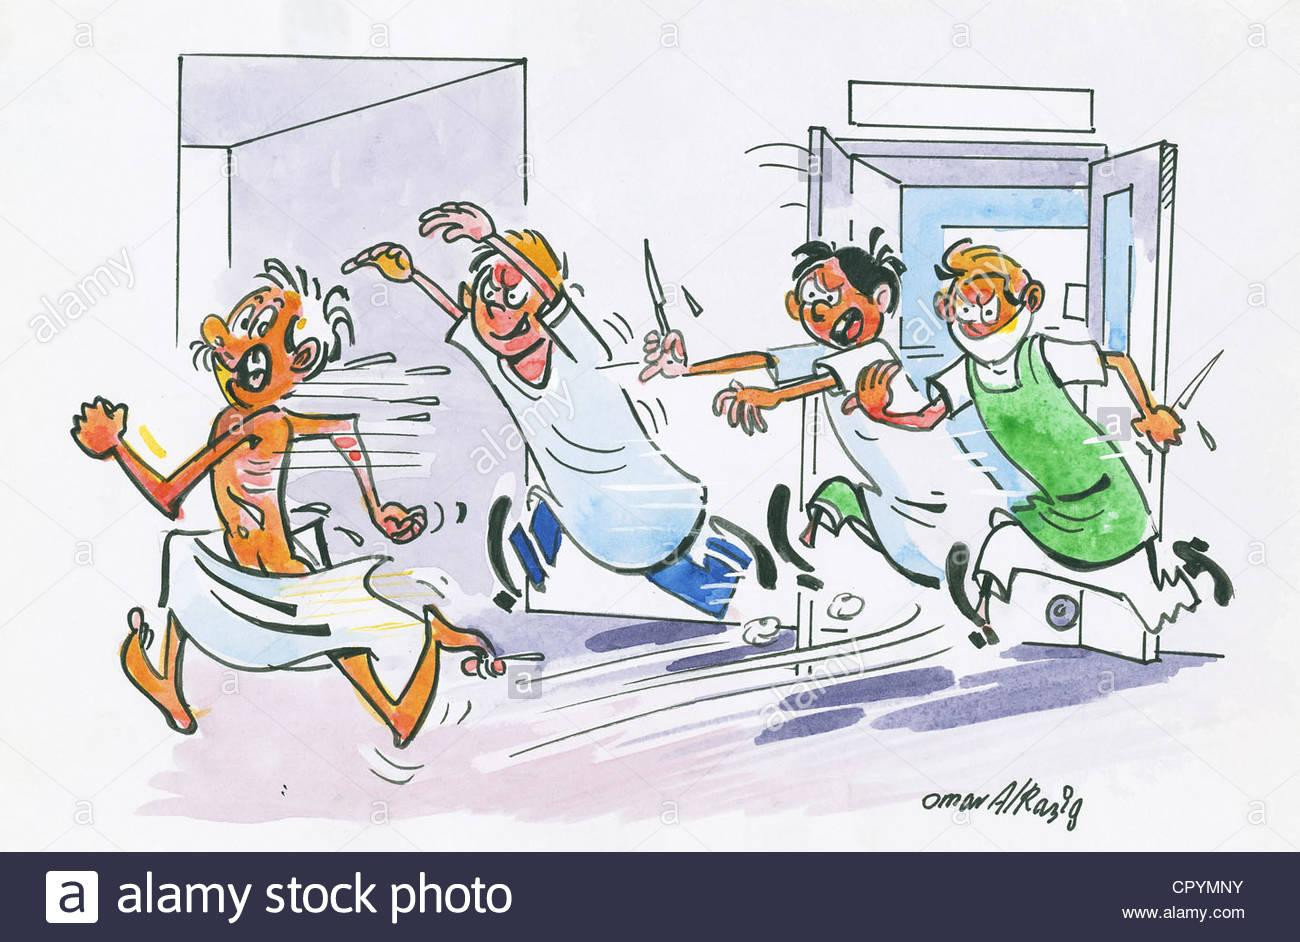 Scared Of Doctors Cut Out Stock Images & Pictures - Alamy